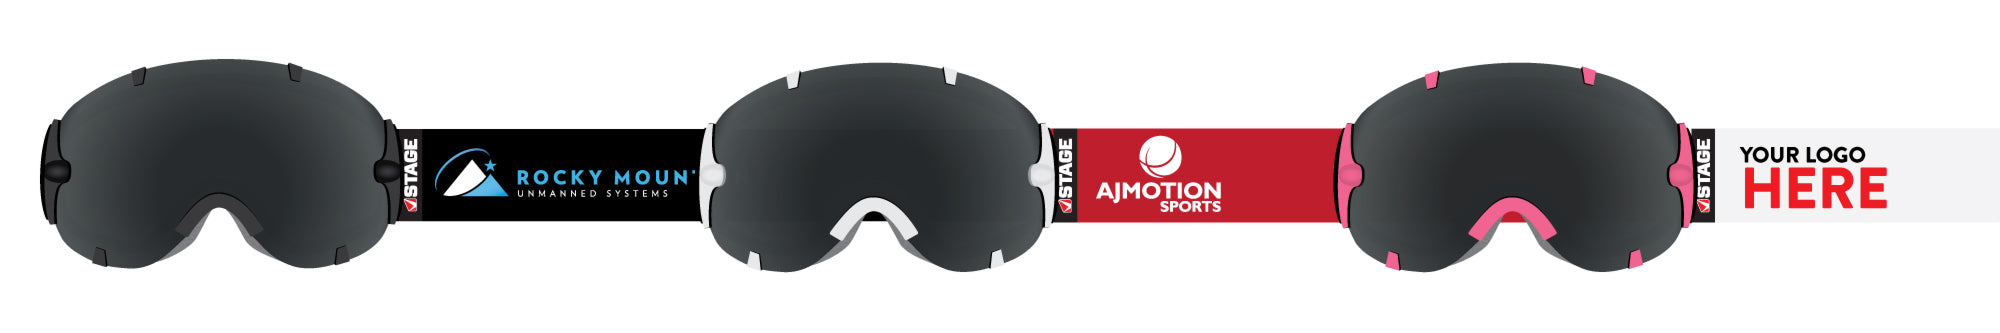 Co-Branded Goggles